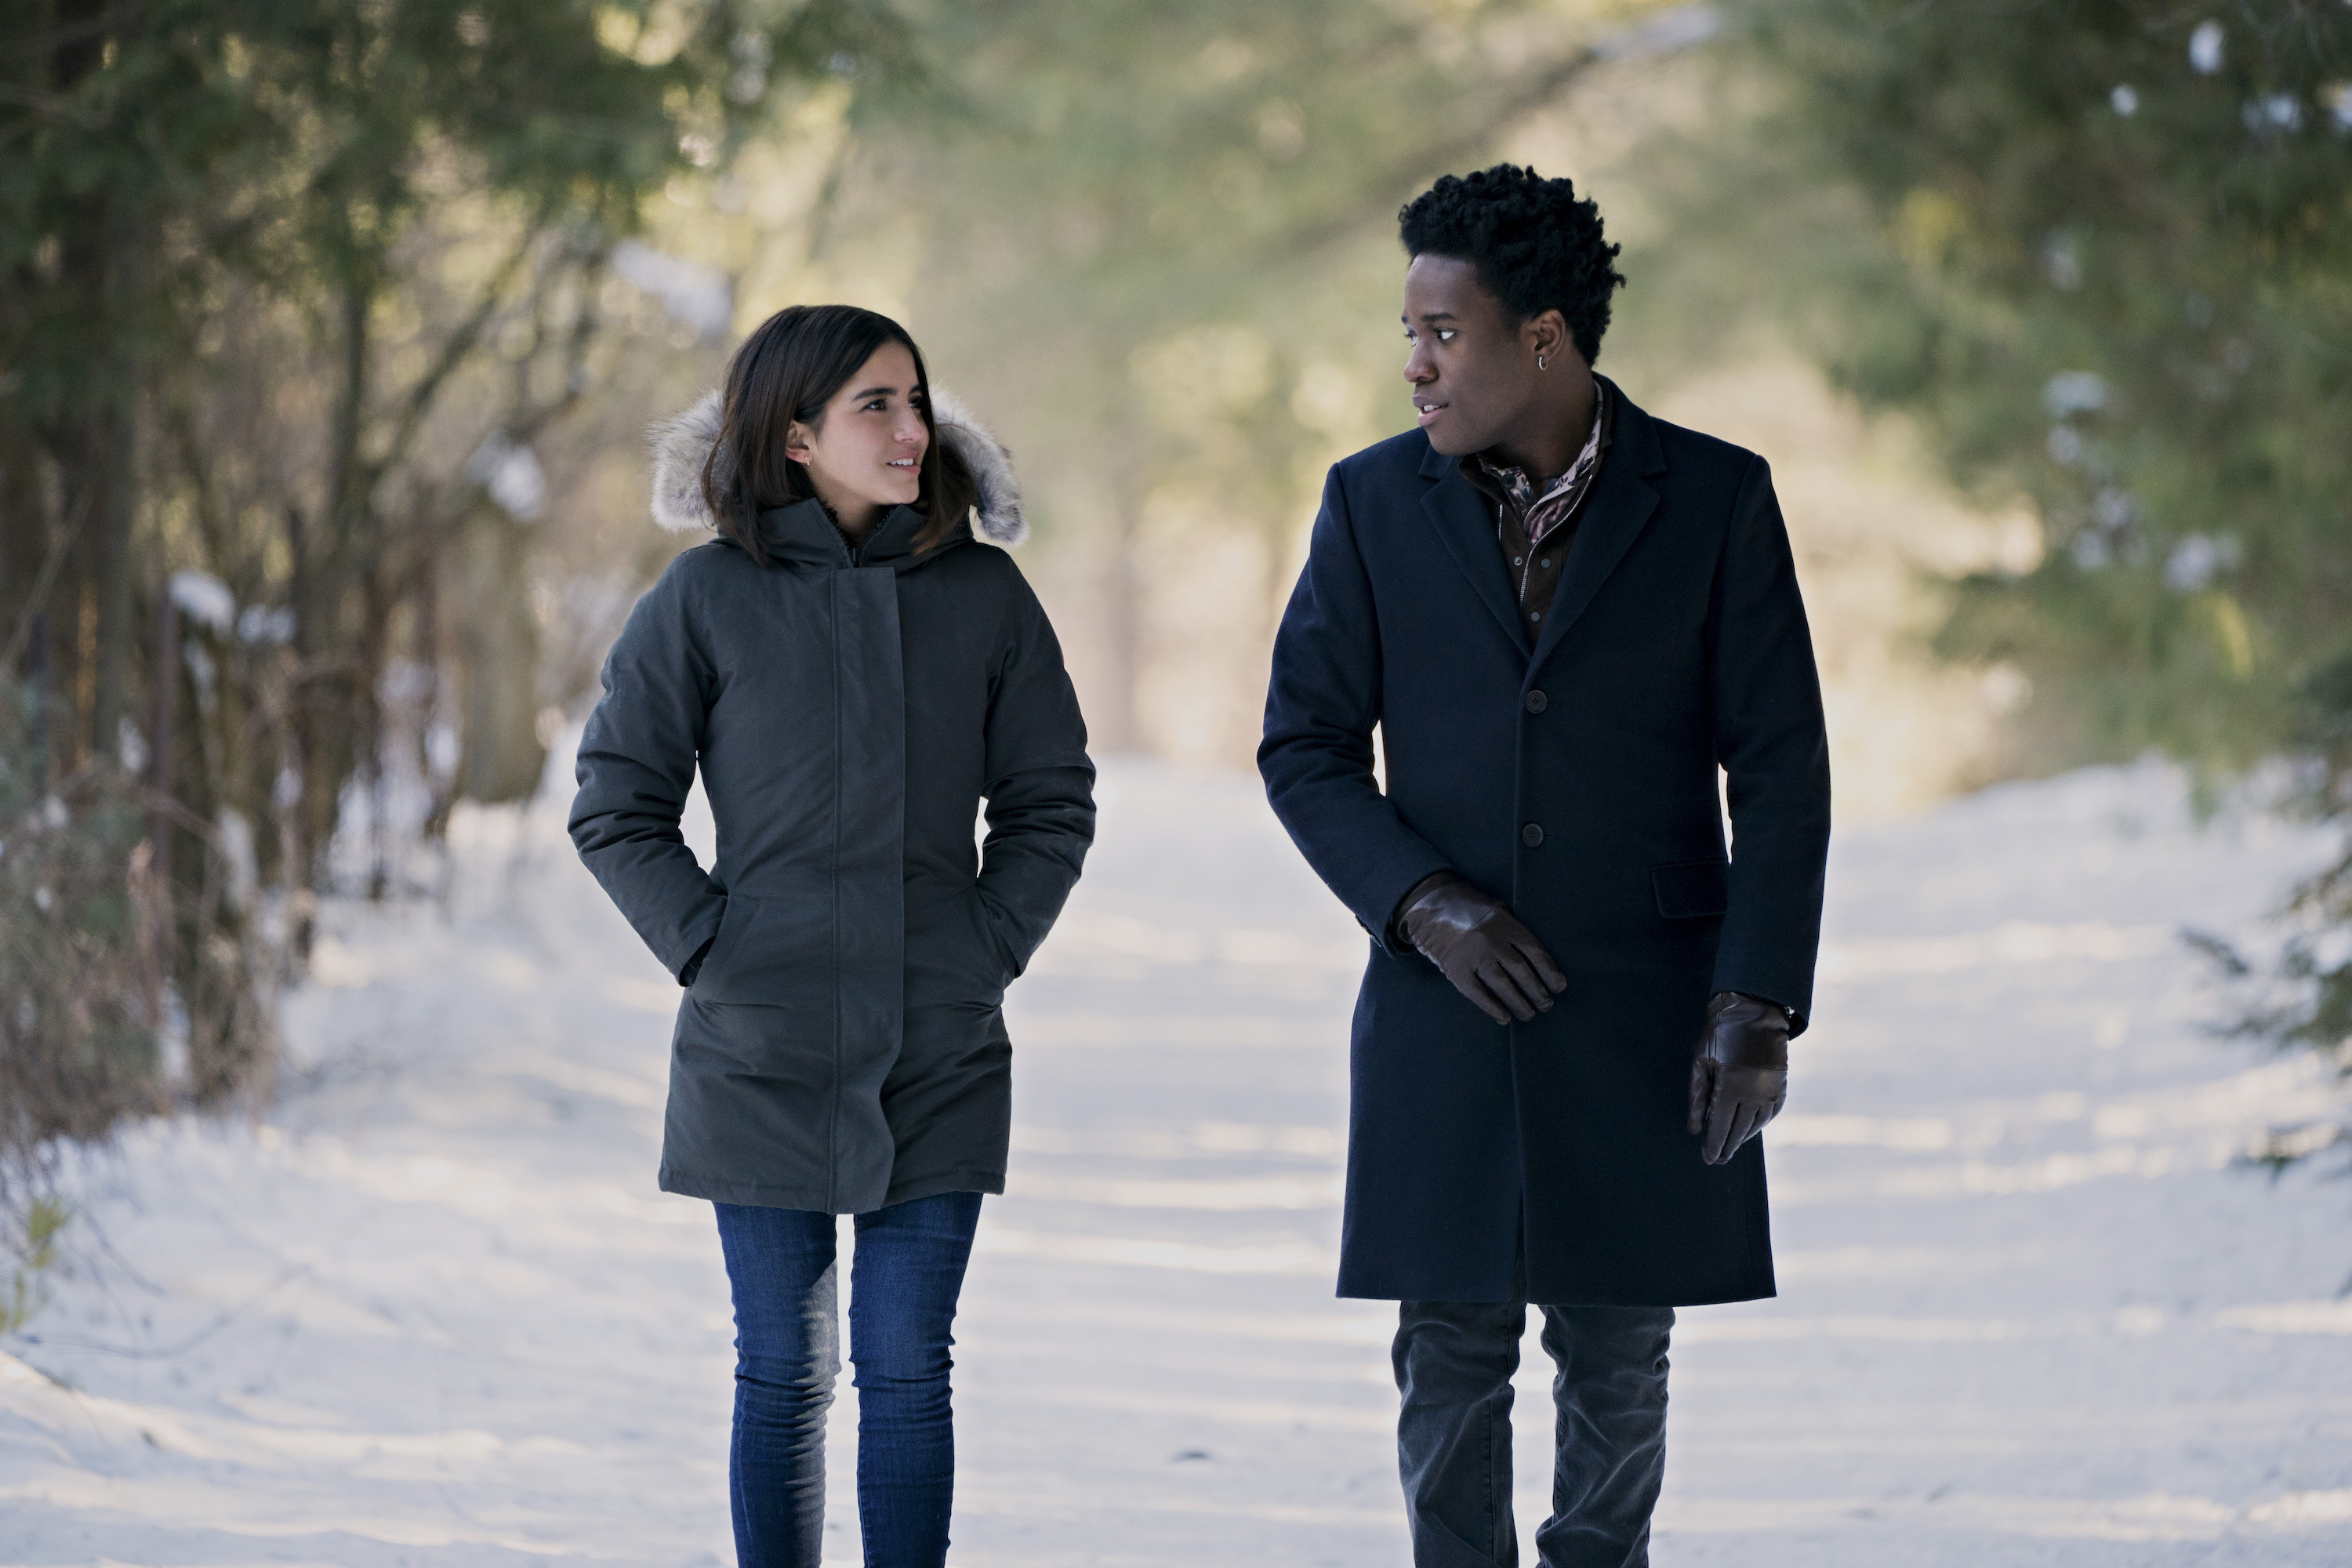 Julie (Merced) and Stuart (Moore) take a walk in the snow.